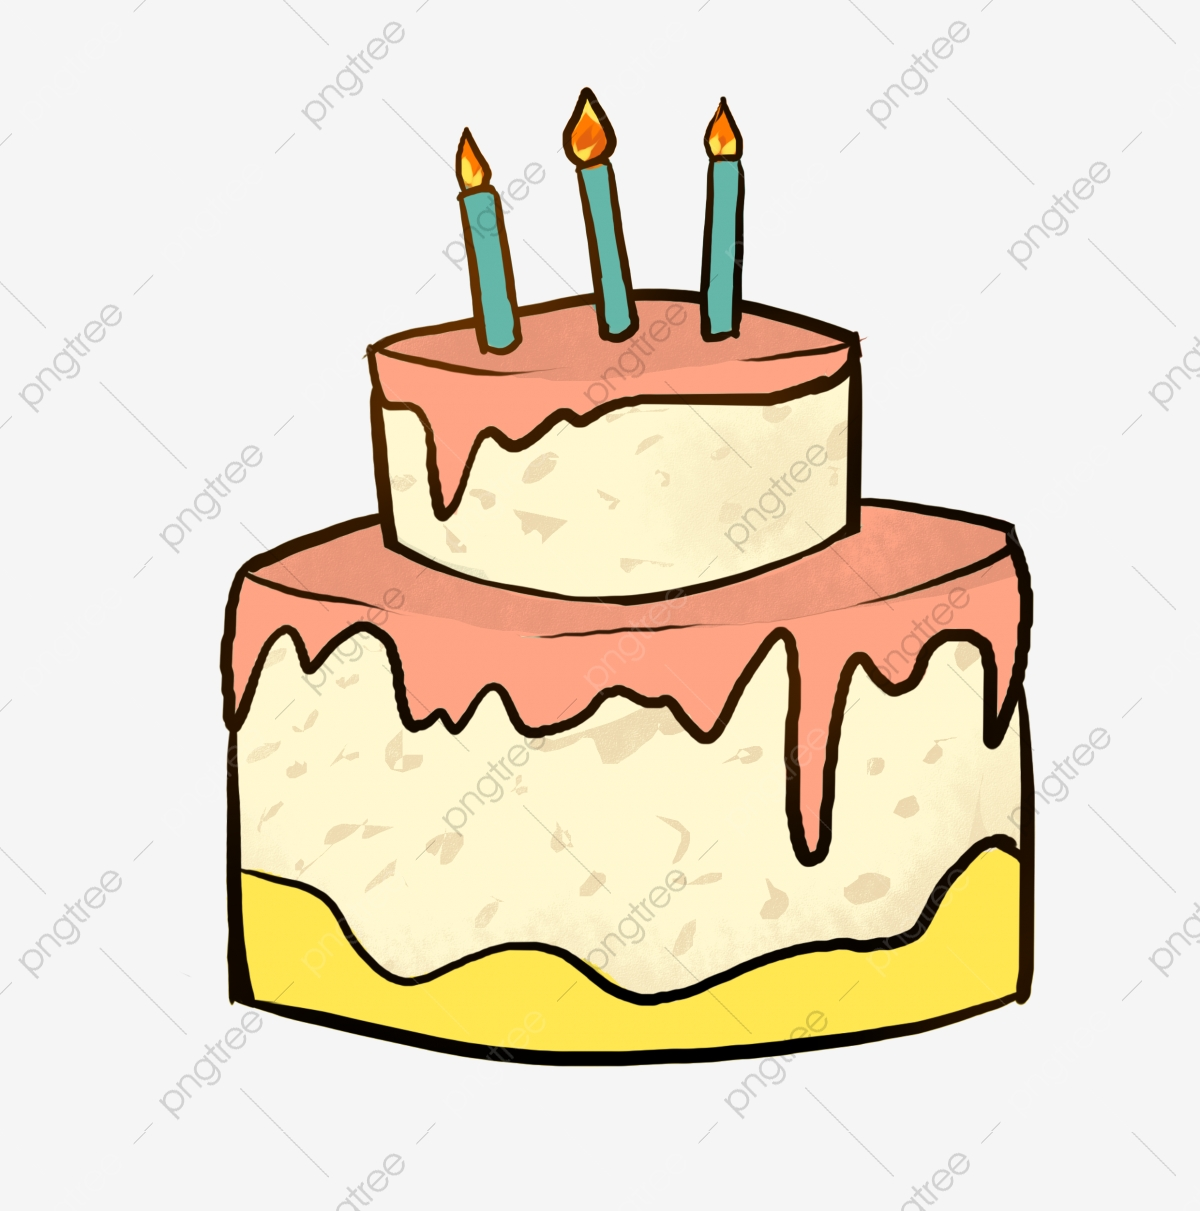 Incredible Birthday Cake Cartoon Illustration Burning Candle Cartoon Funny Birthday Cards Online Elaedamsfinfo